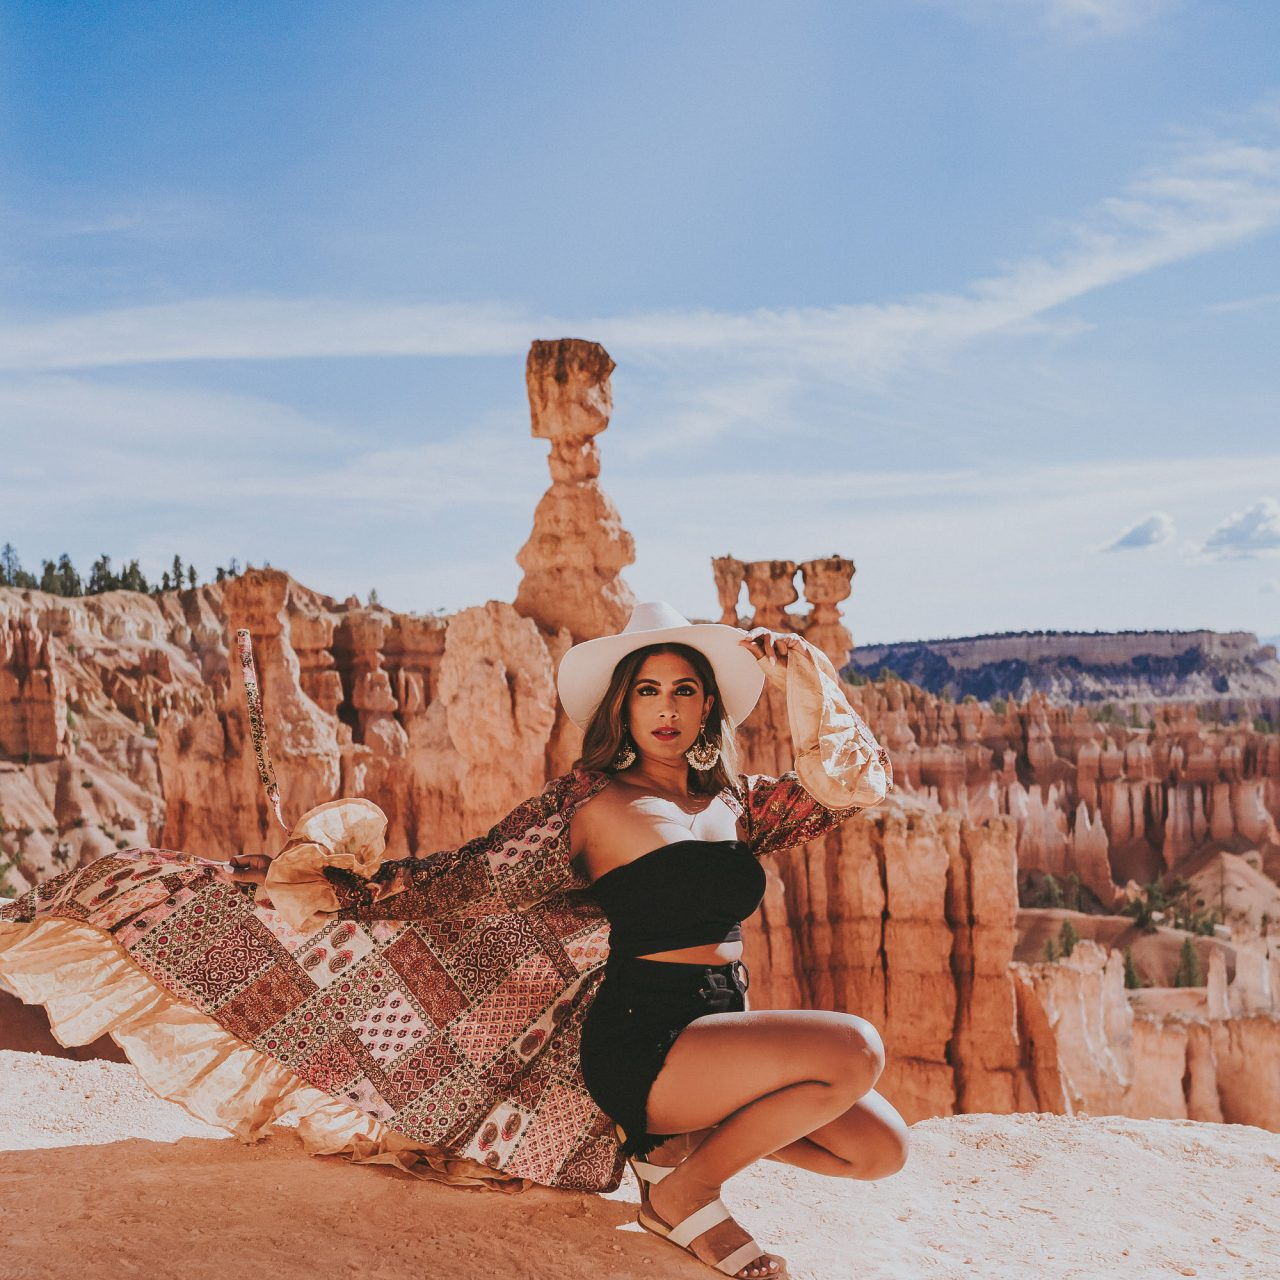 Zion & Bryce Canyon National Park – 4 Day Itinerary